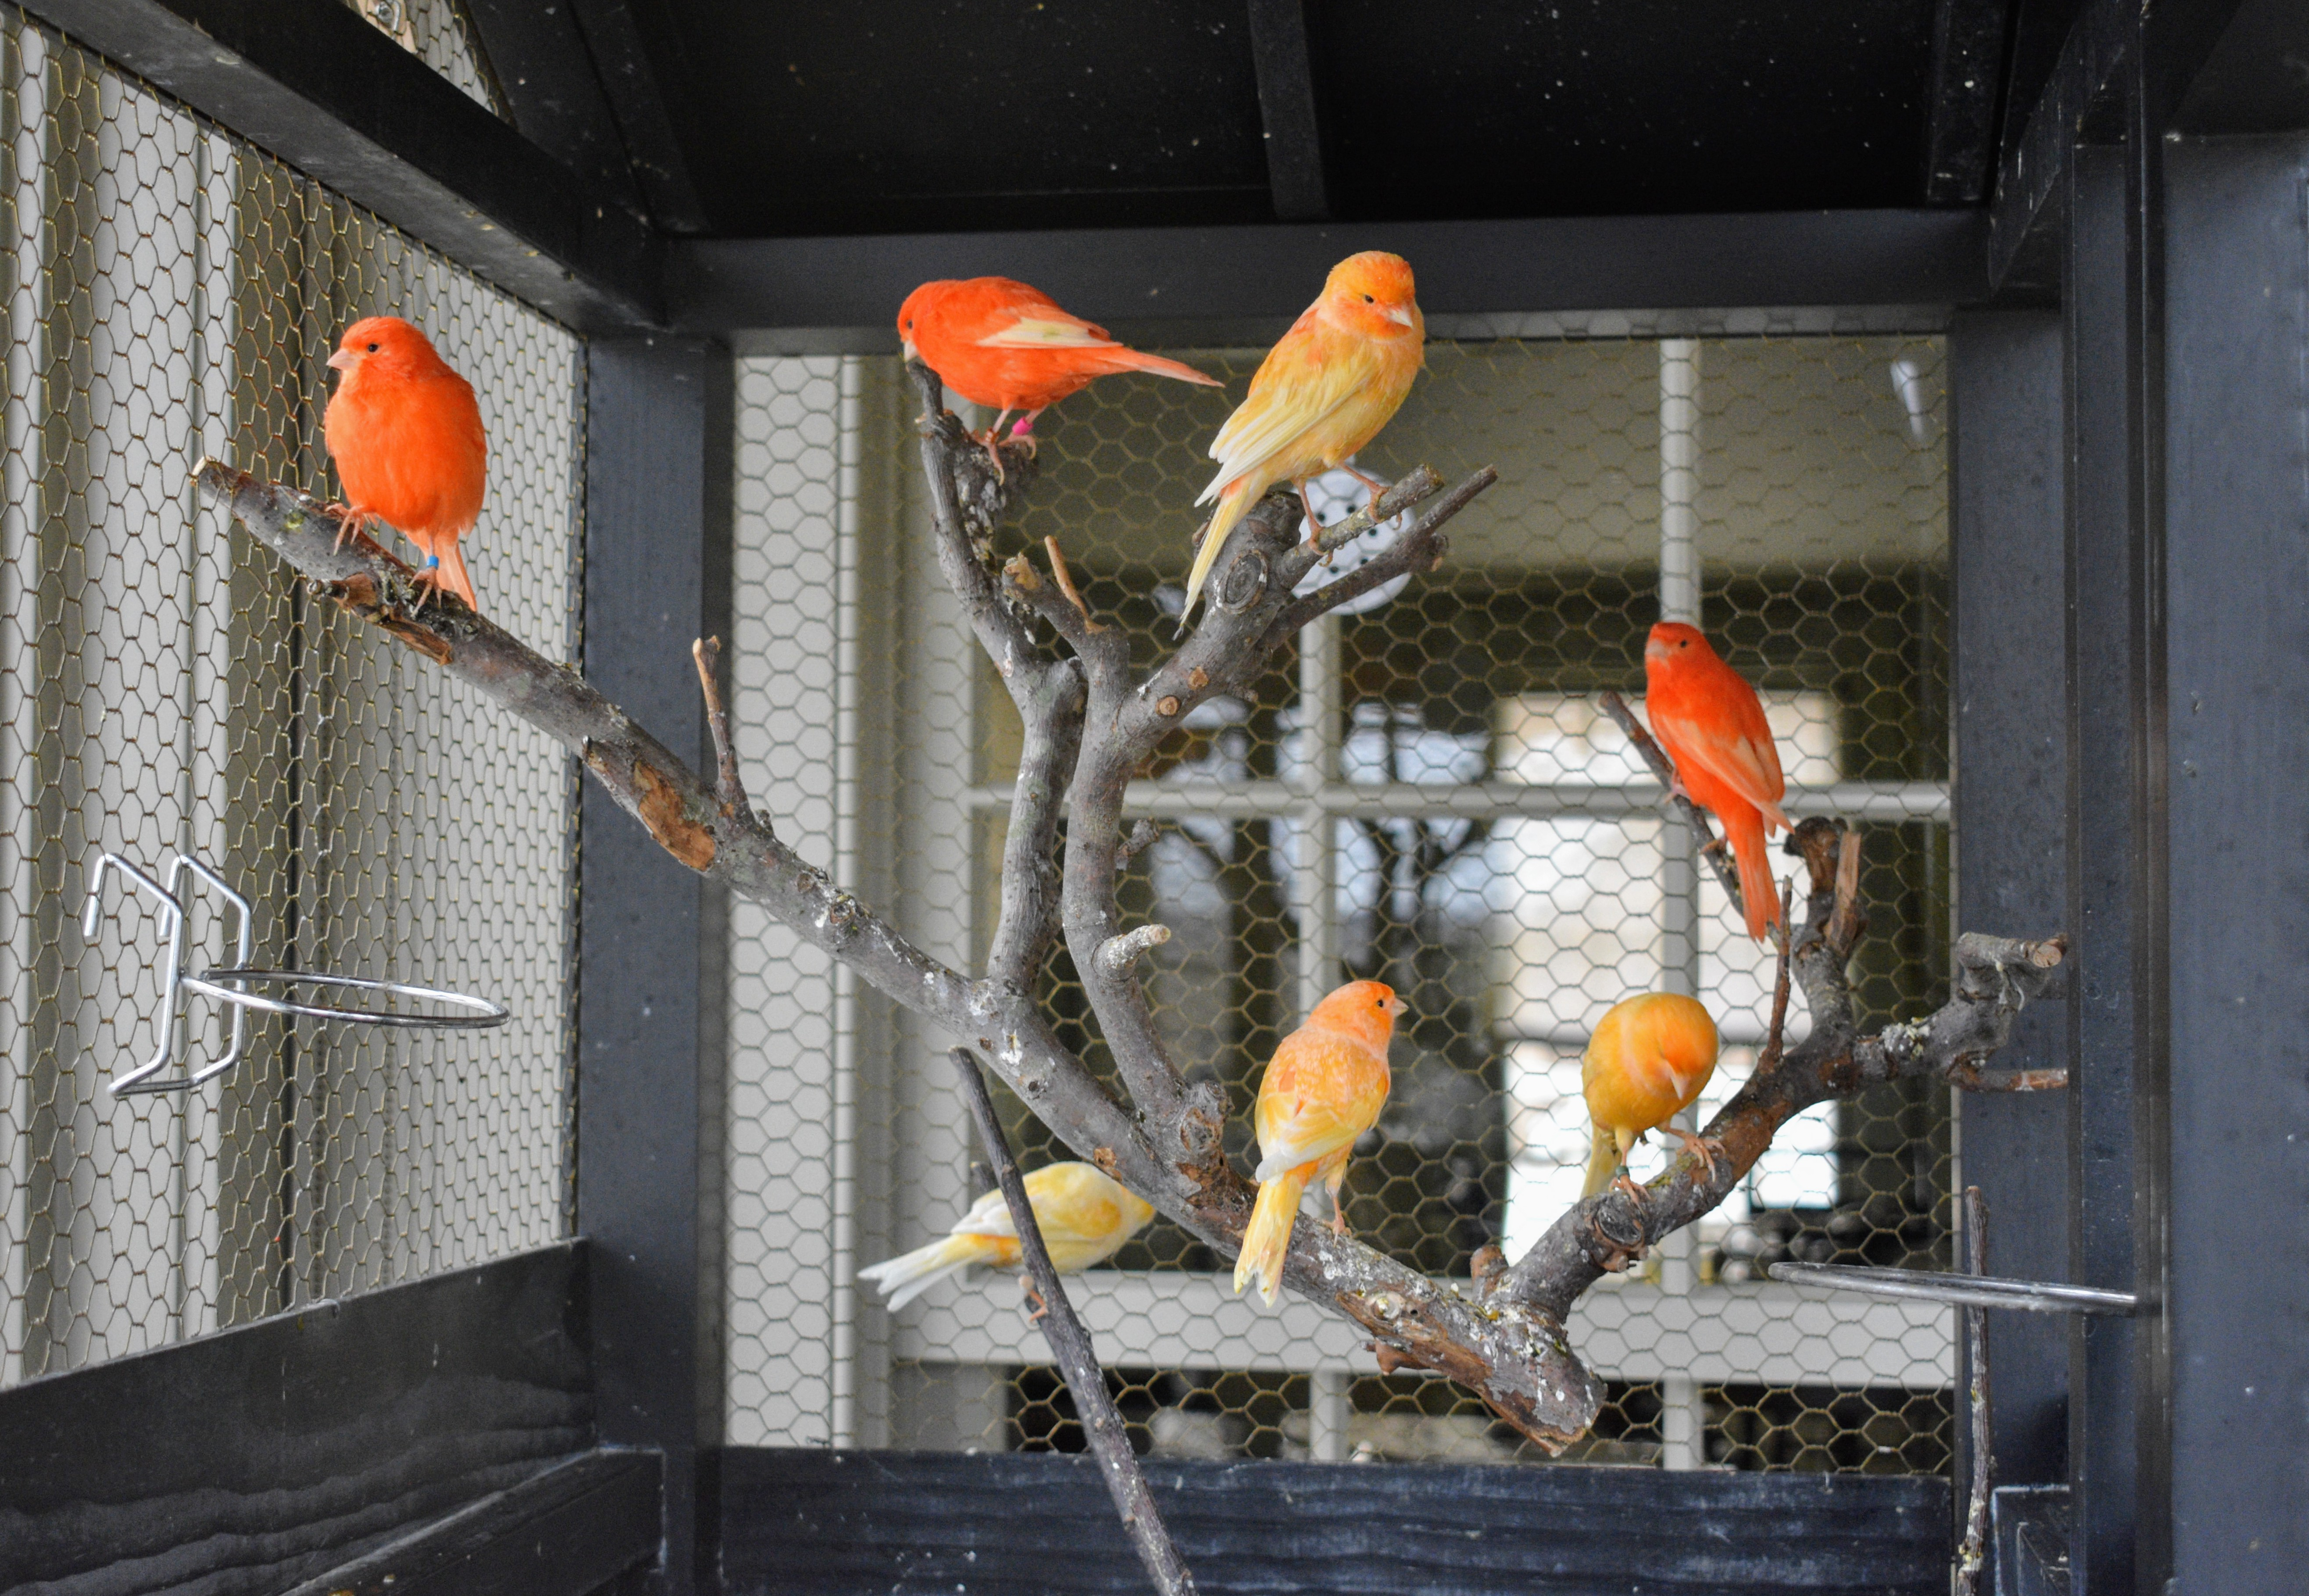 Daily Care For My Canaries The Martha Stewart Blog